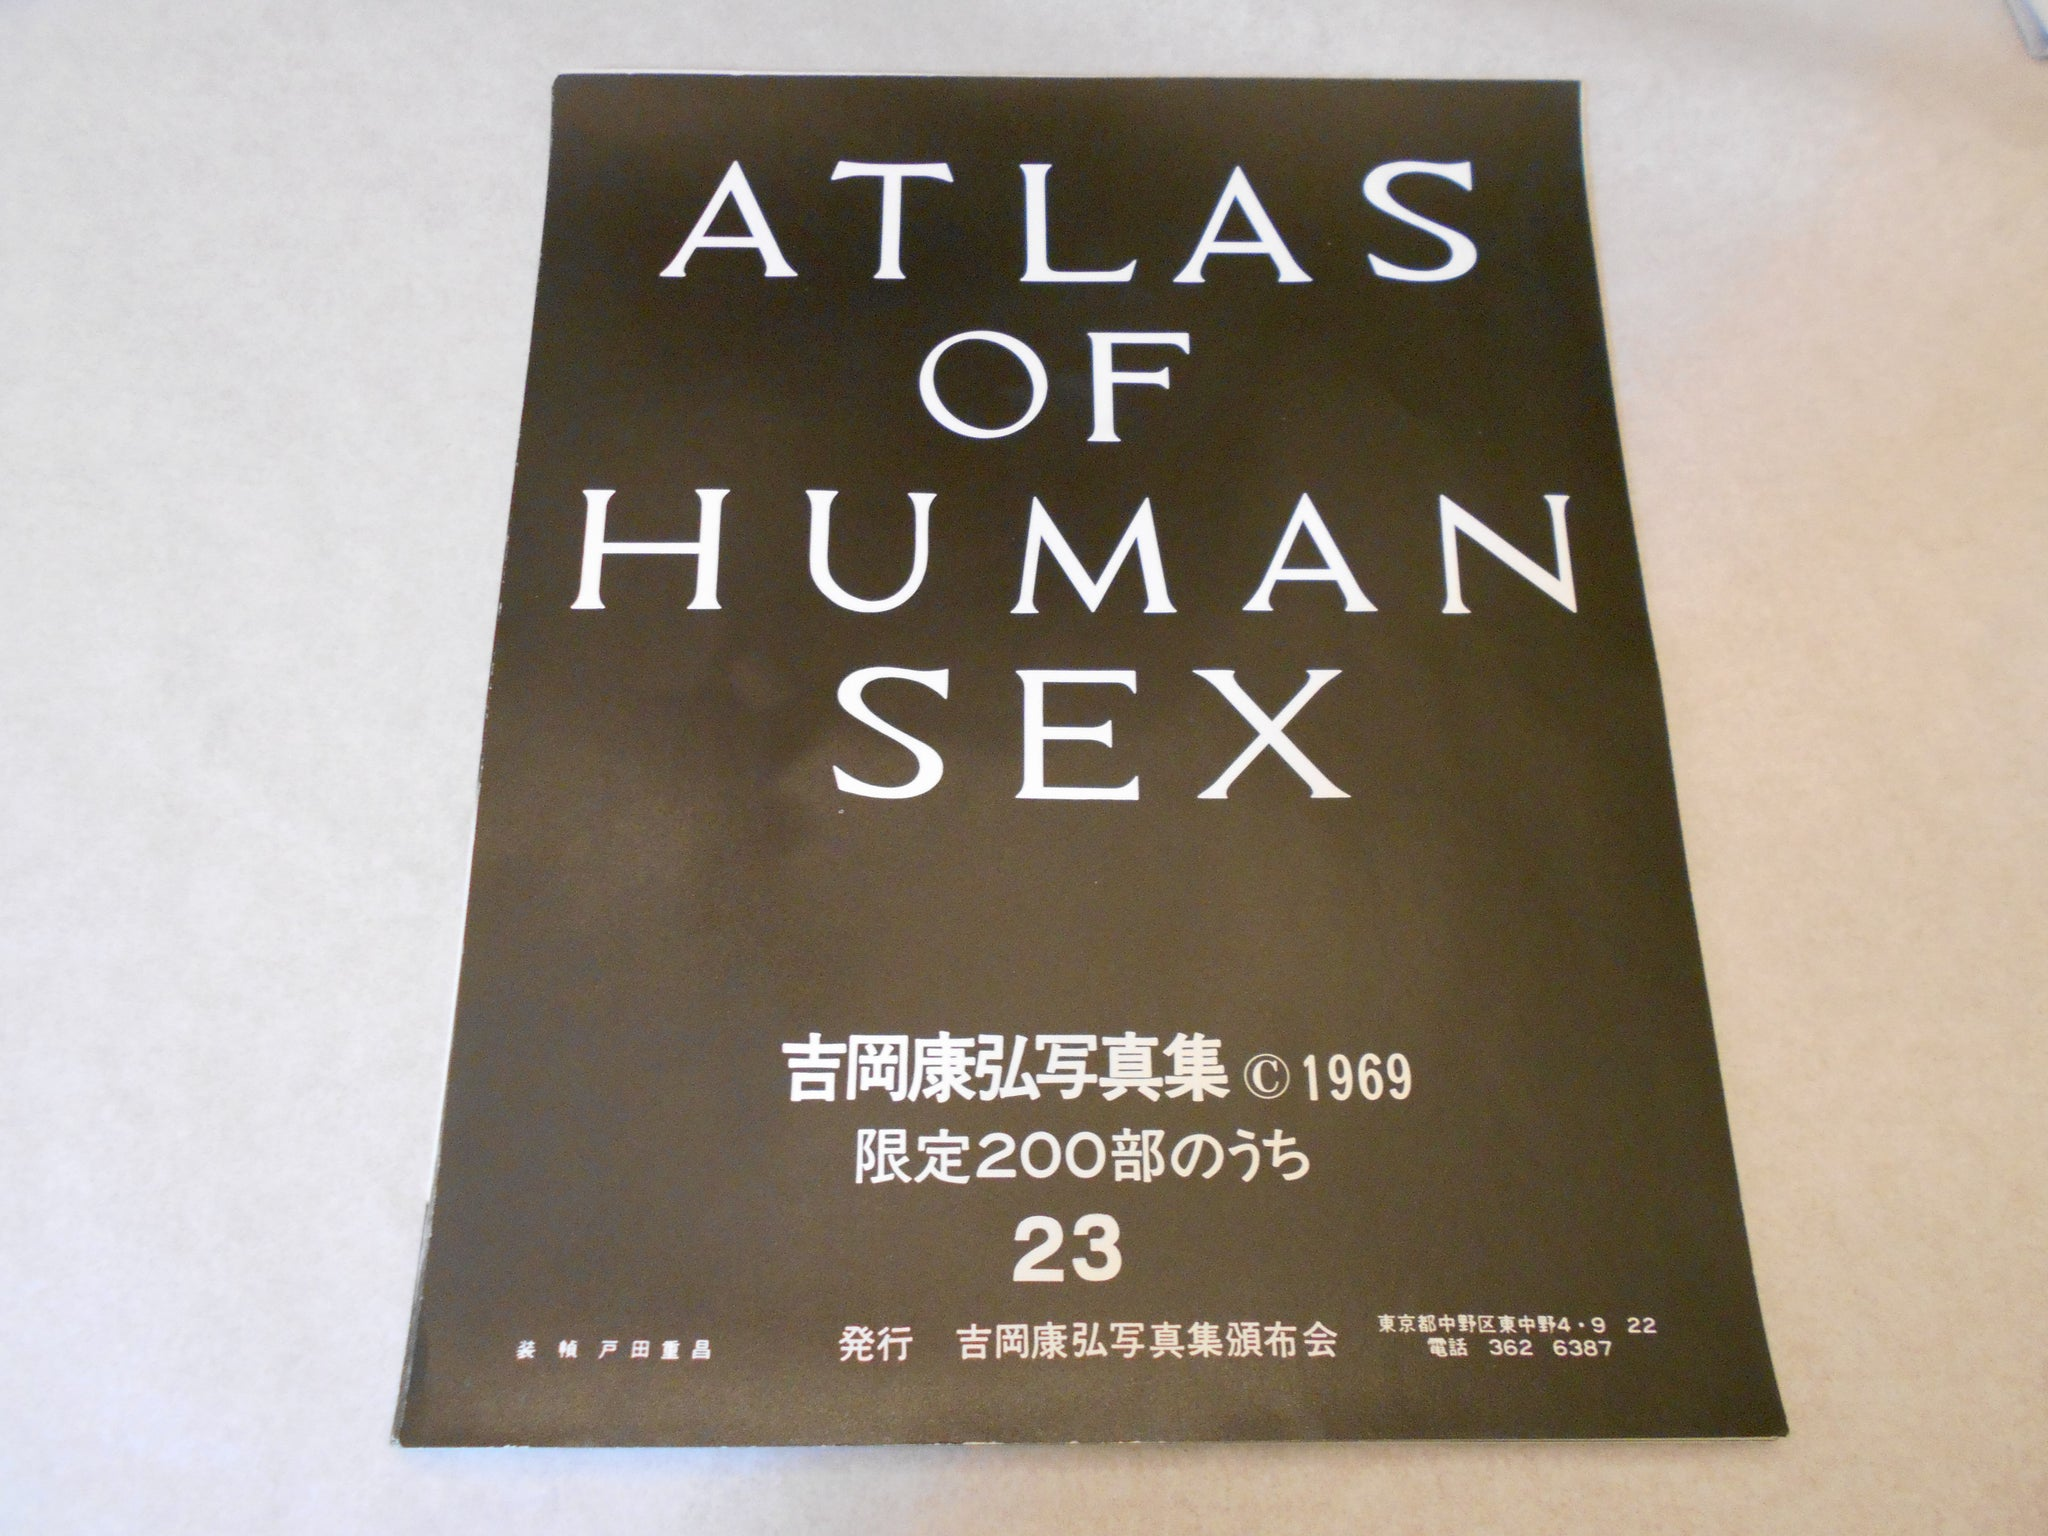 Atlas of human sex | Yasuhiro Yoshioka | Self published 1969, 23/200